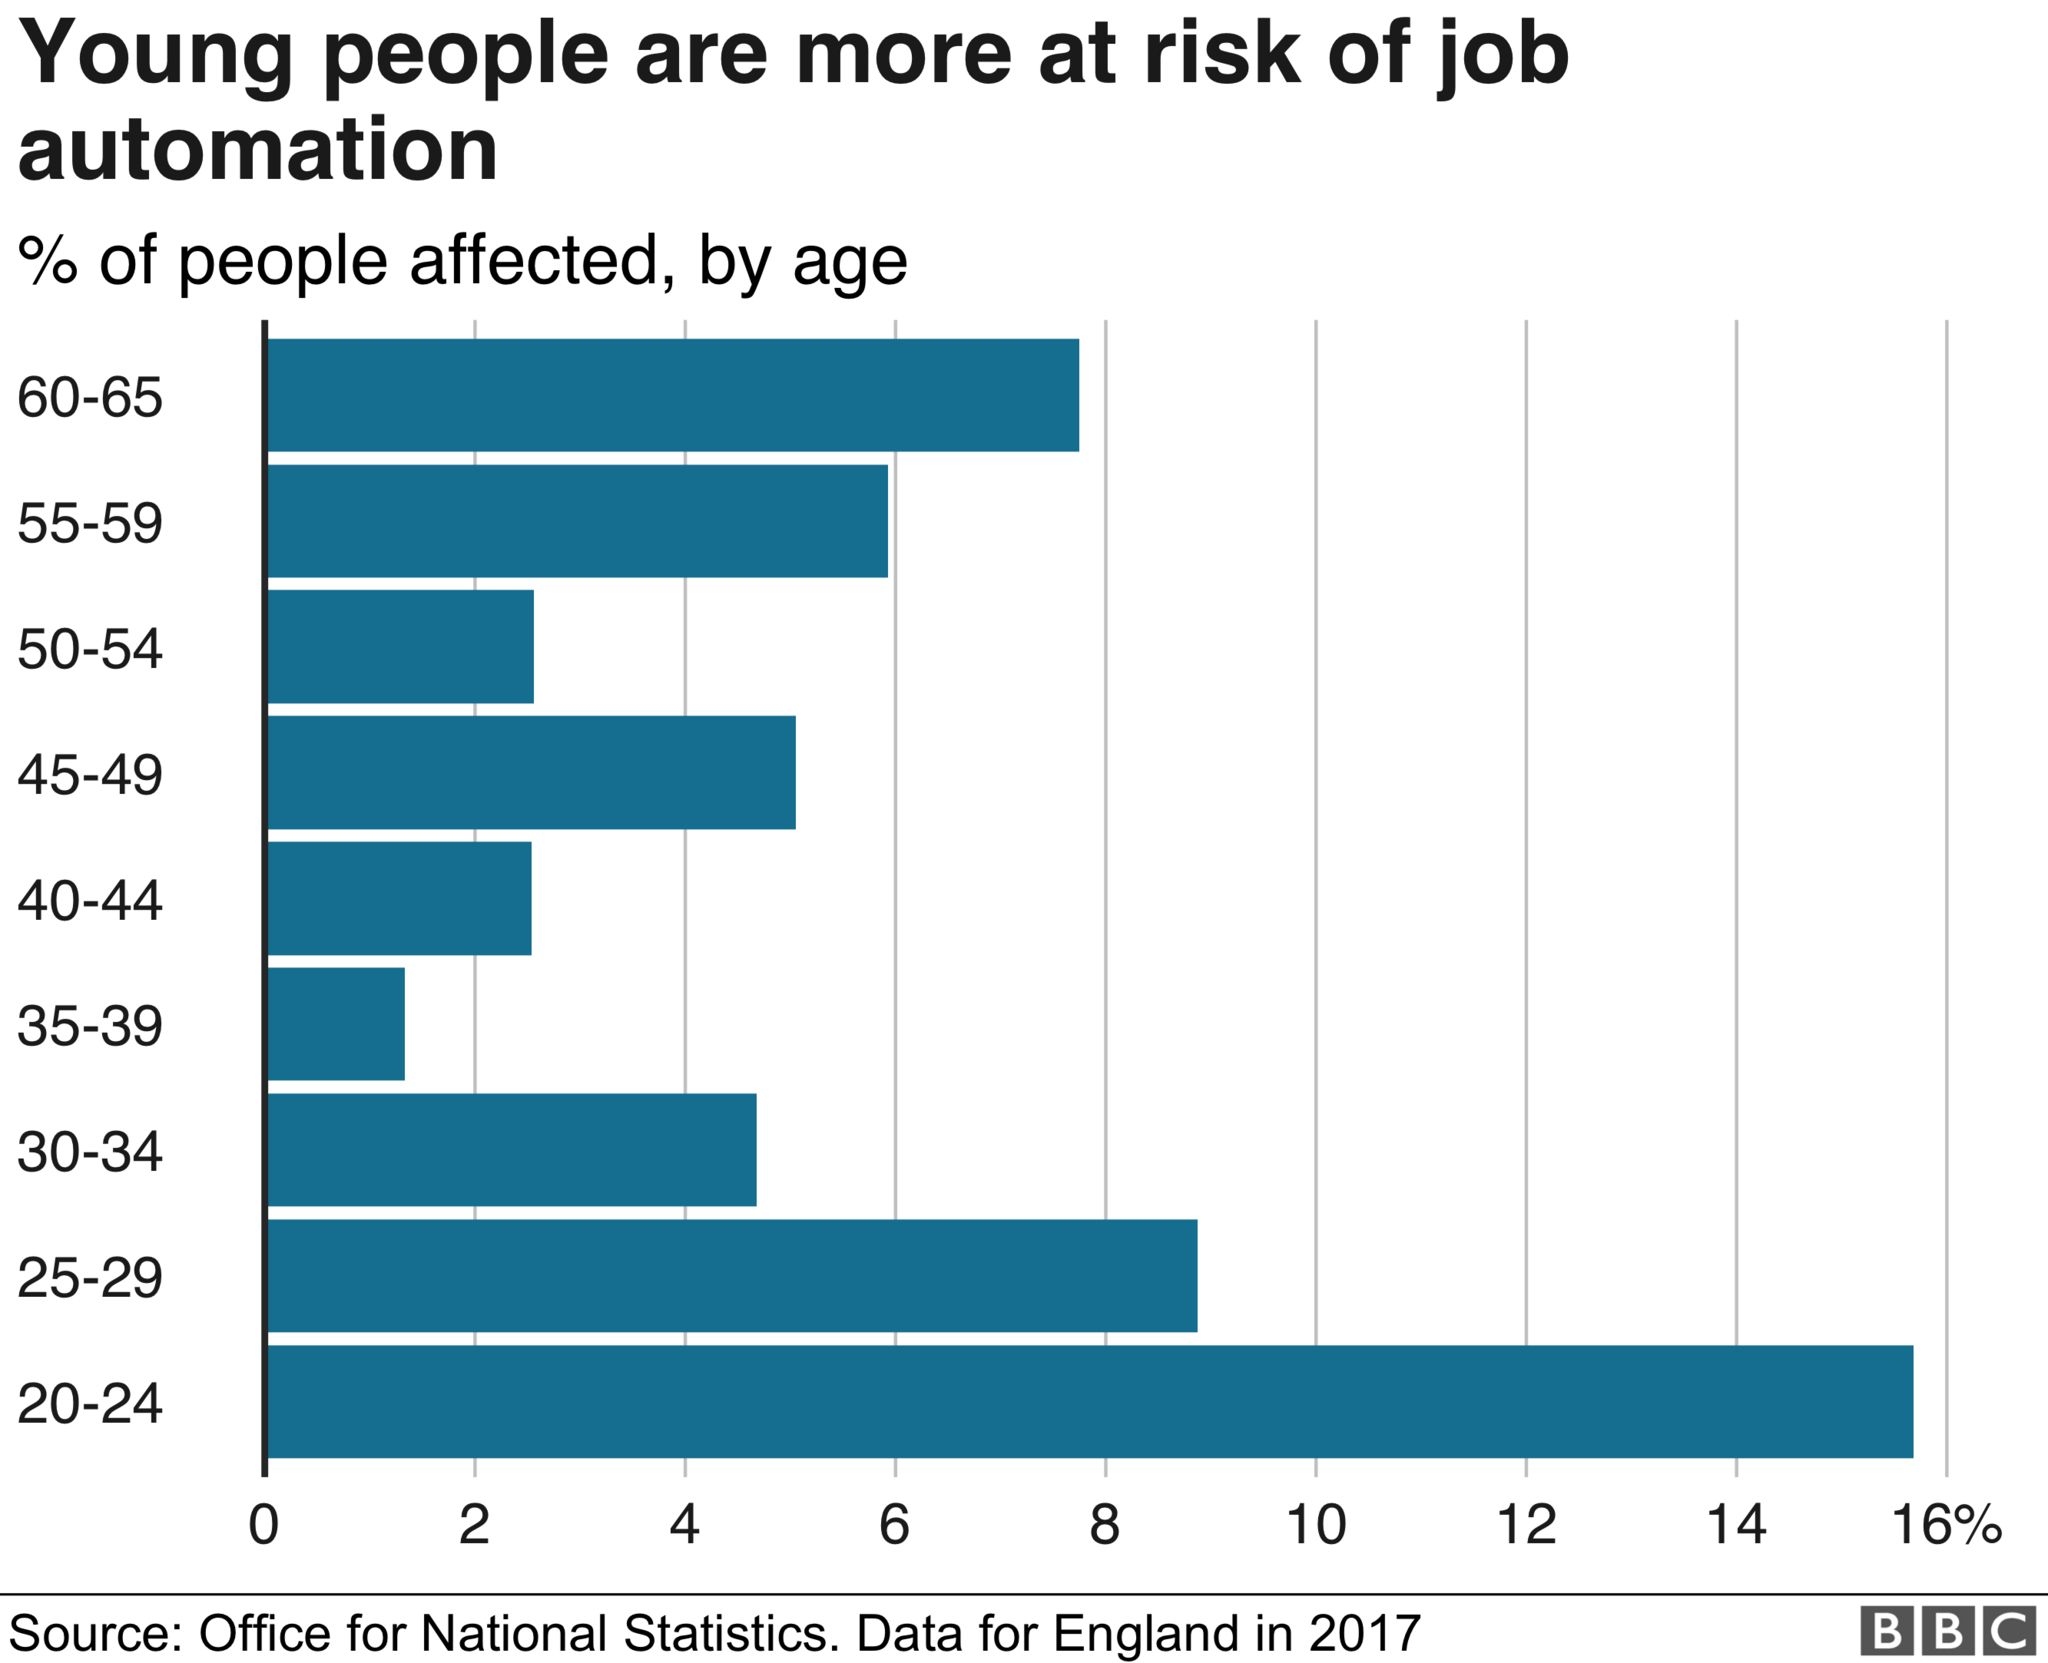 Chart on automation of jobs by age